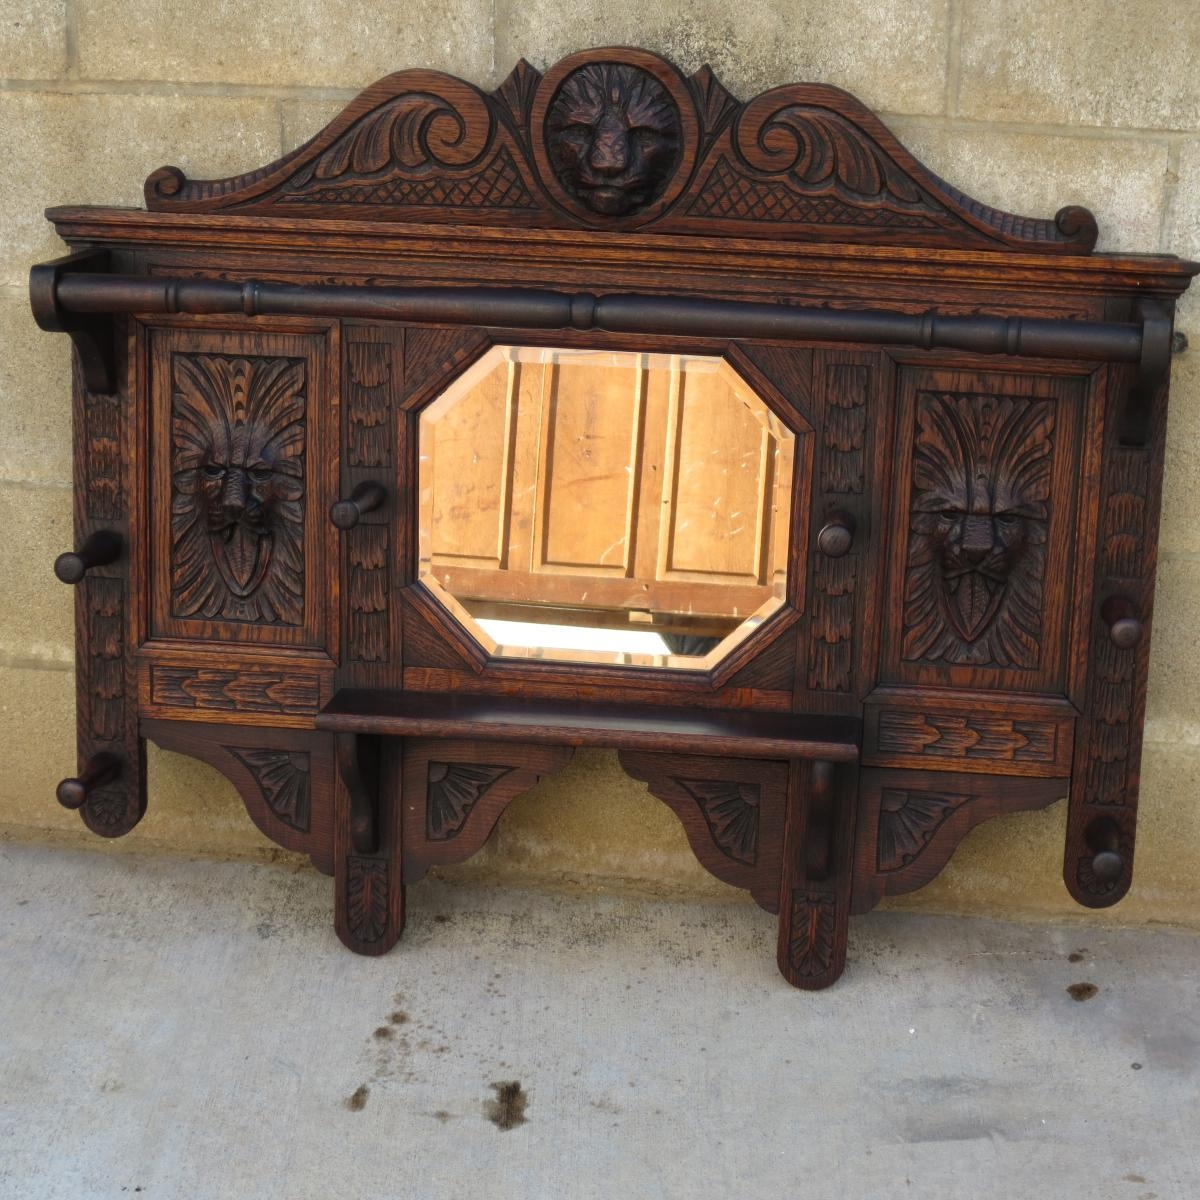 Antique Mirrors, Vintage Mirrors, Antique Wall Mirrors, And French Regarding Antique Wall Mirror (View 18 of 20)